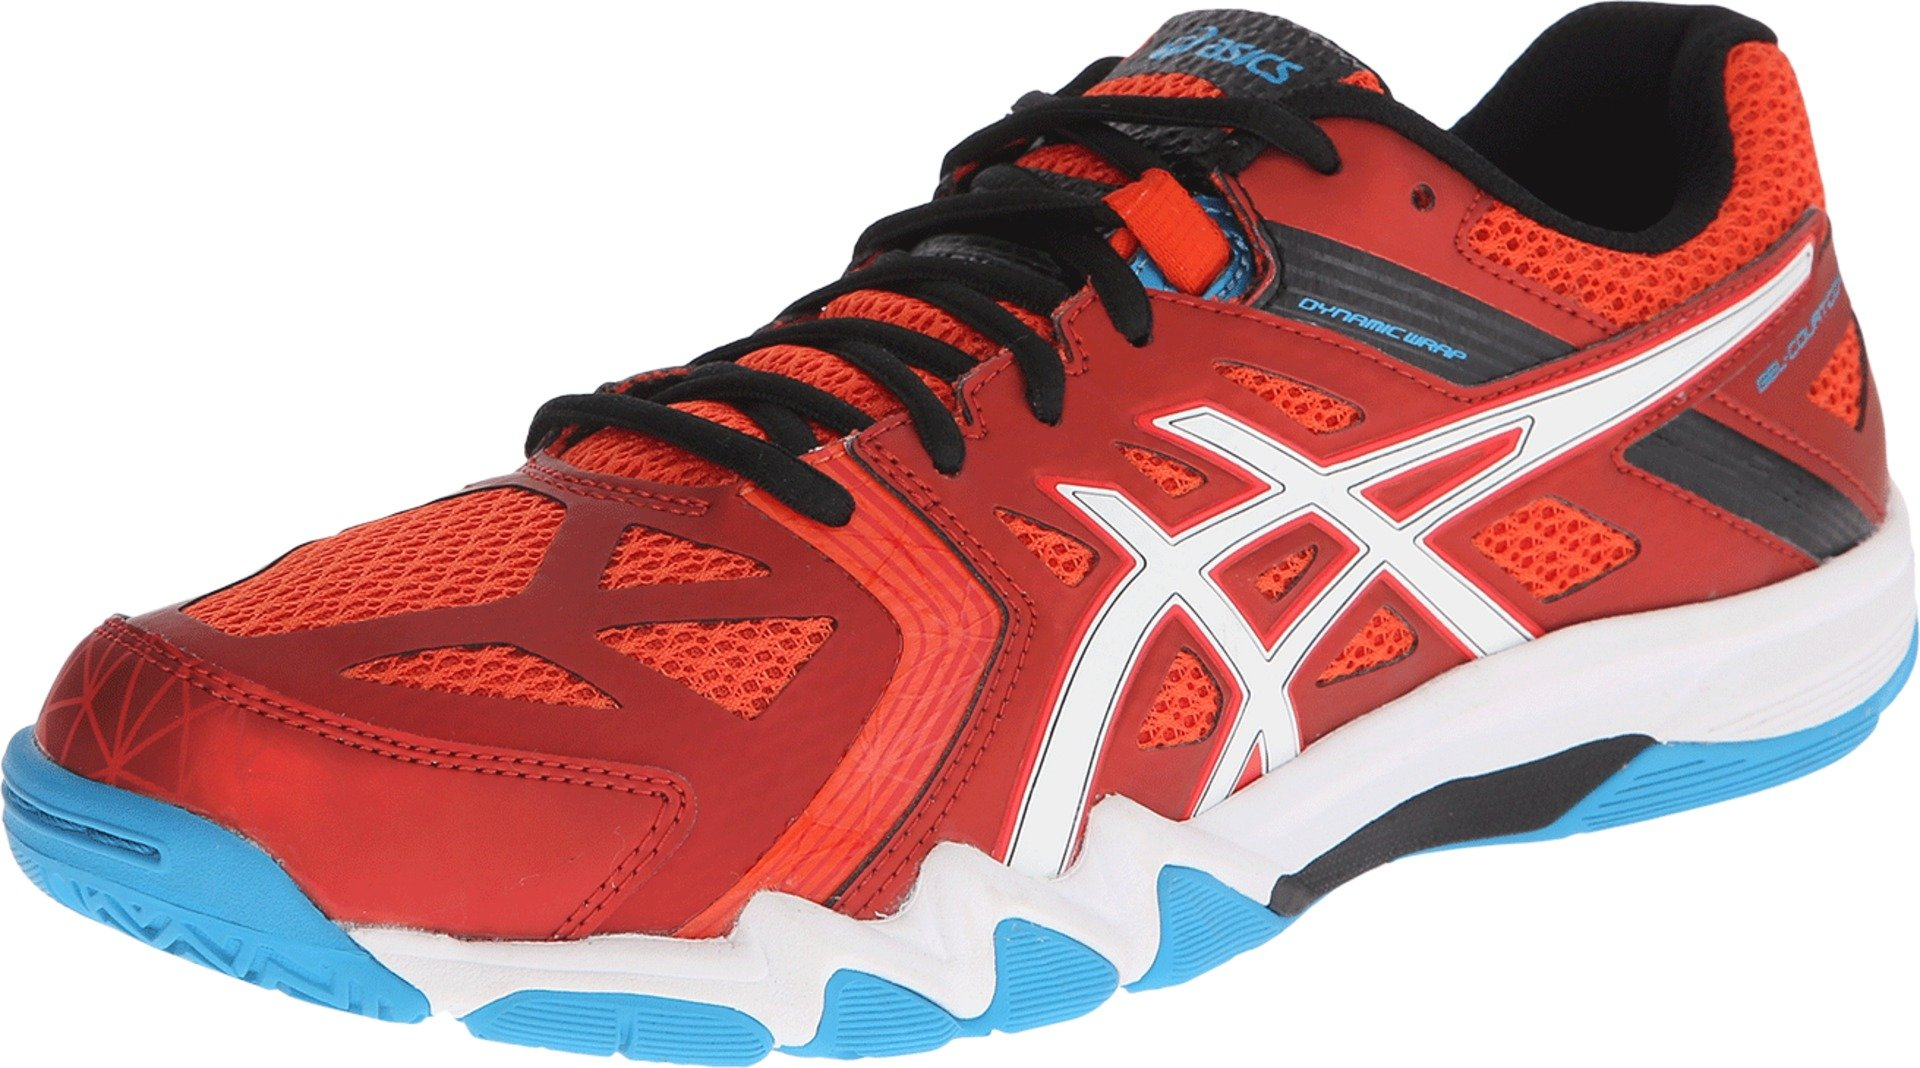 ASICS Men's Gel-Court Control Volleyball Shoe, Cherry Tomato/White/Turquoise, 15 M US